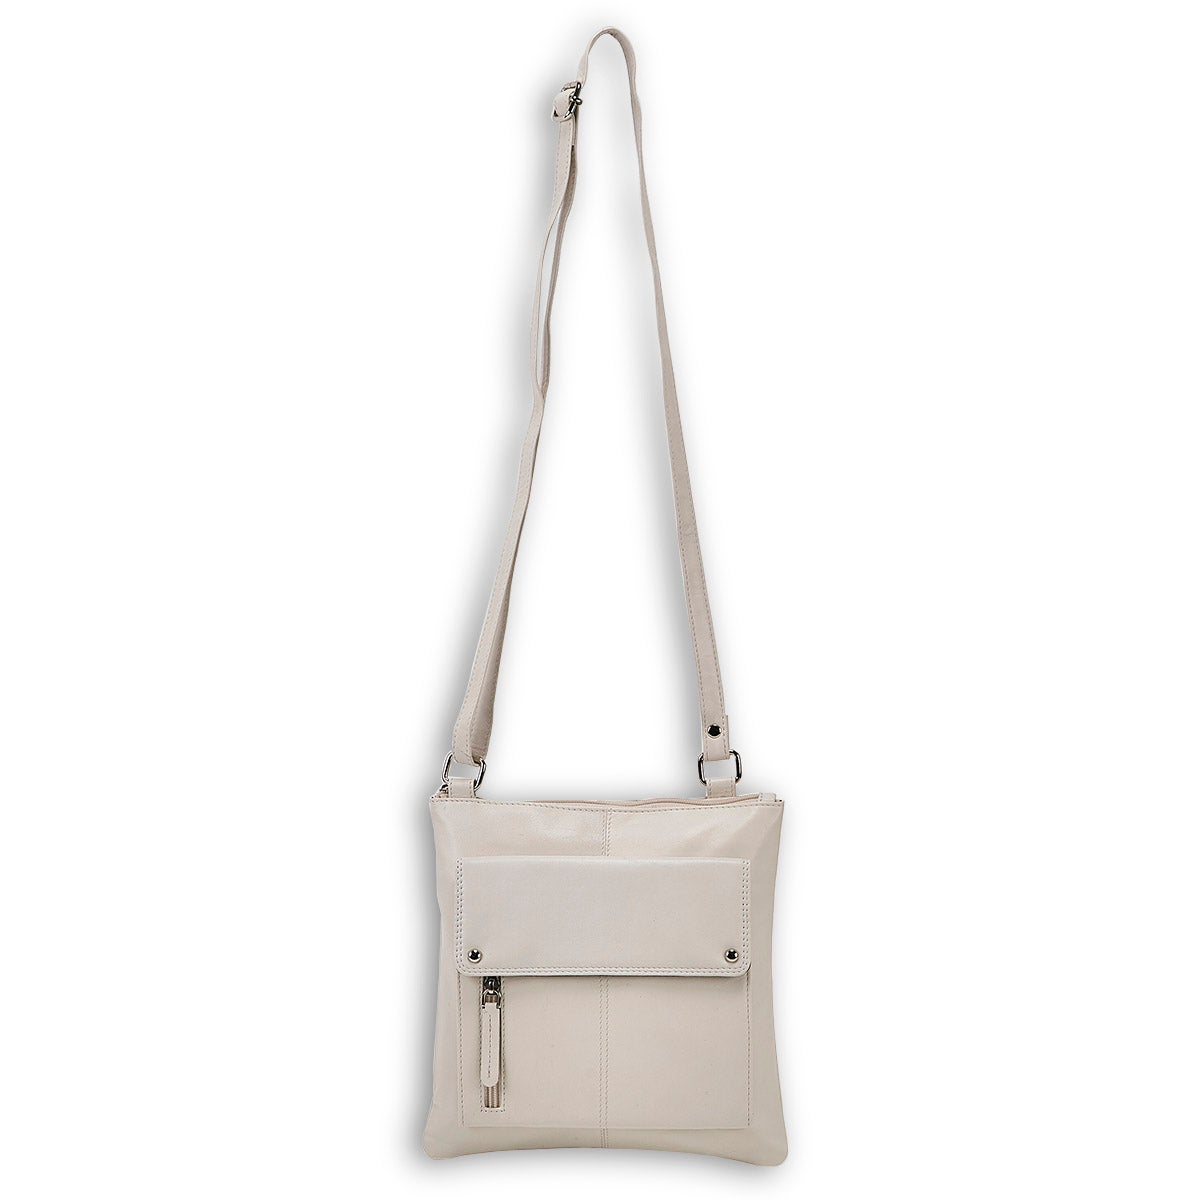 Women's 215-RFID cream leather cross body bag